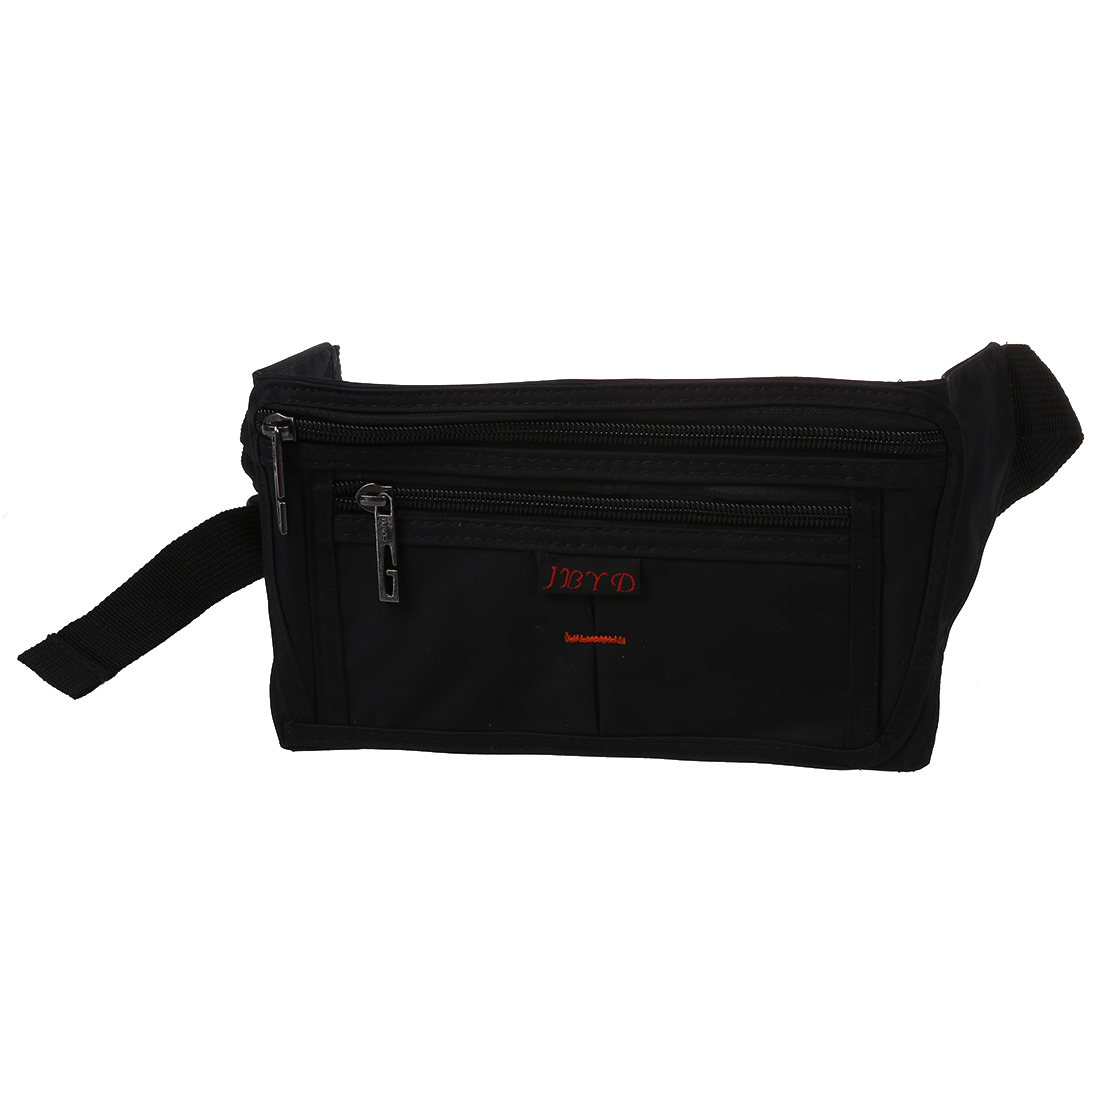 Hot Fashion Waterproof Waist Bum Bag Fanny Pack Purse Wallet Zipper Pocket Black